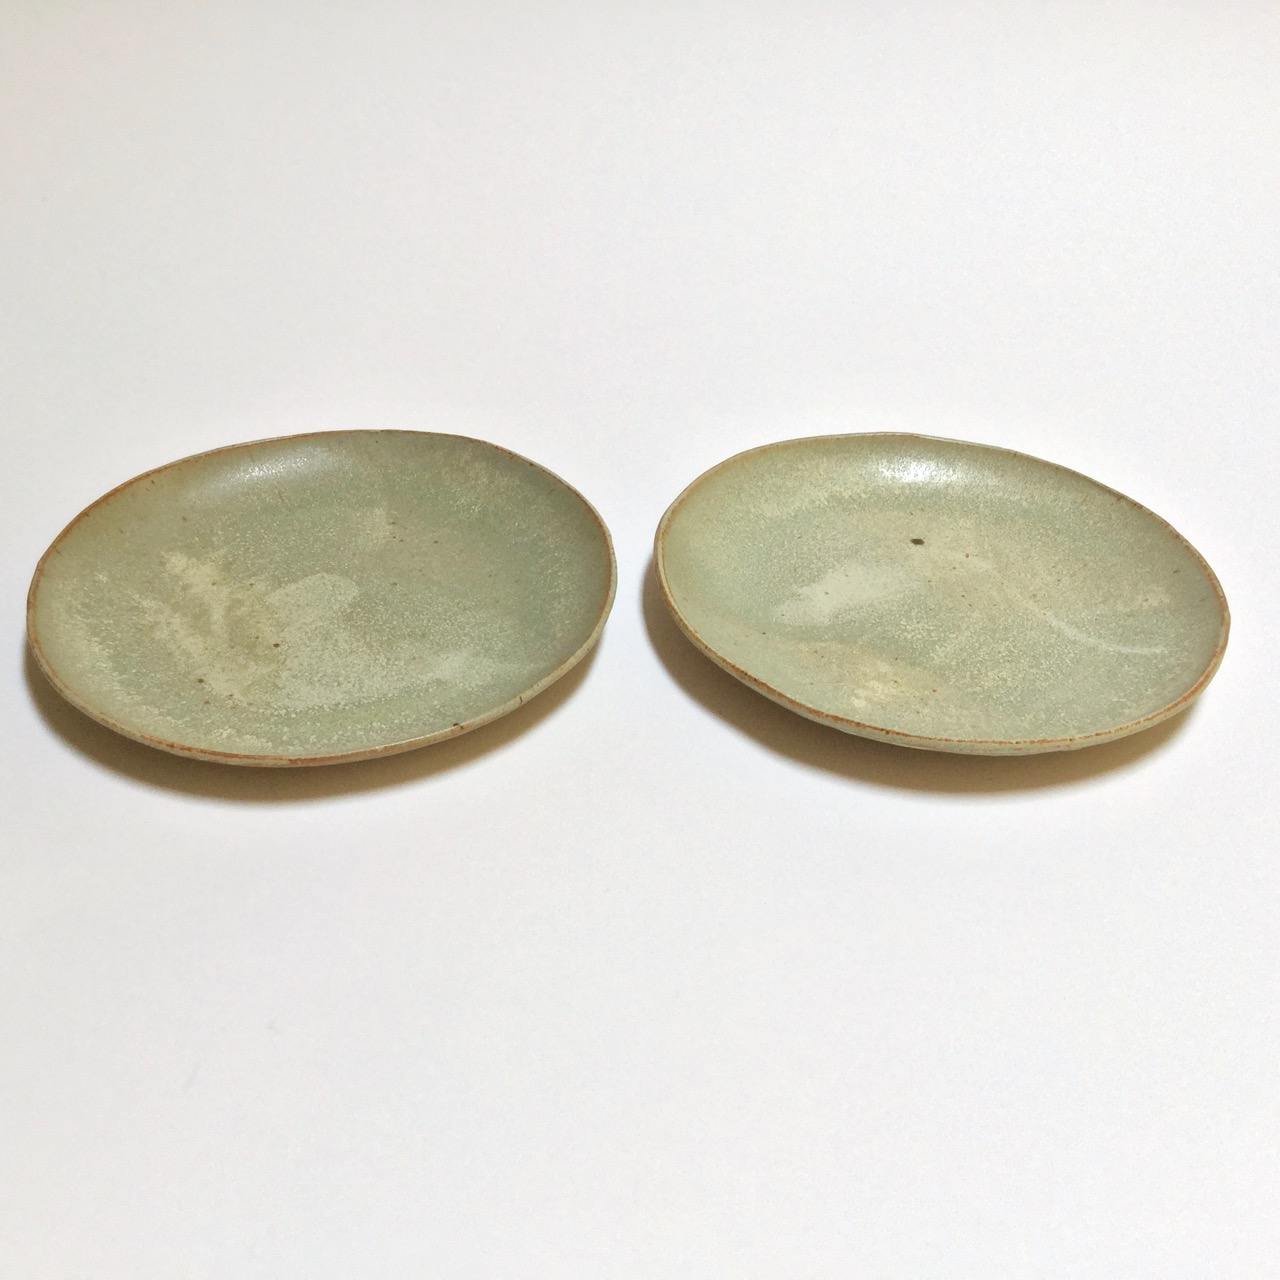 1075 Pair desert sand dinner plates side.jpg